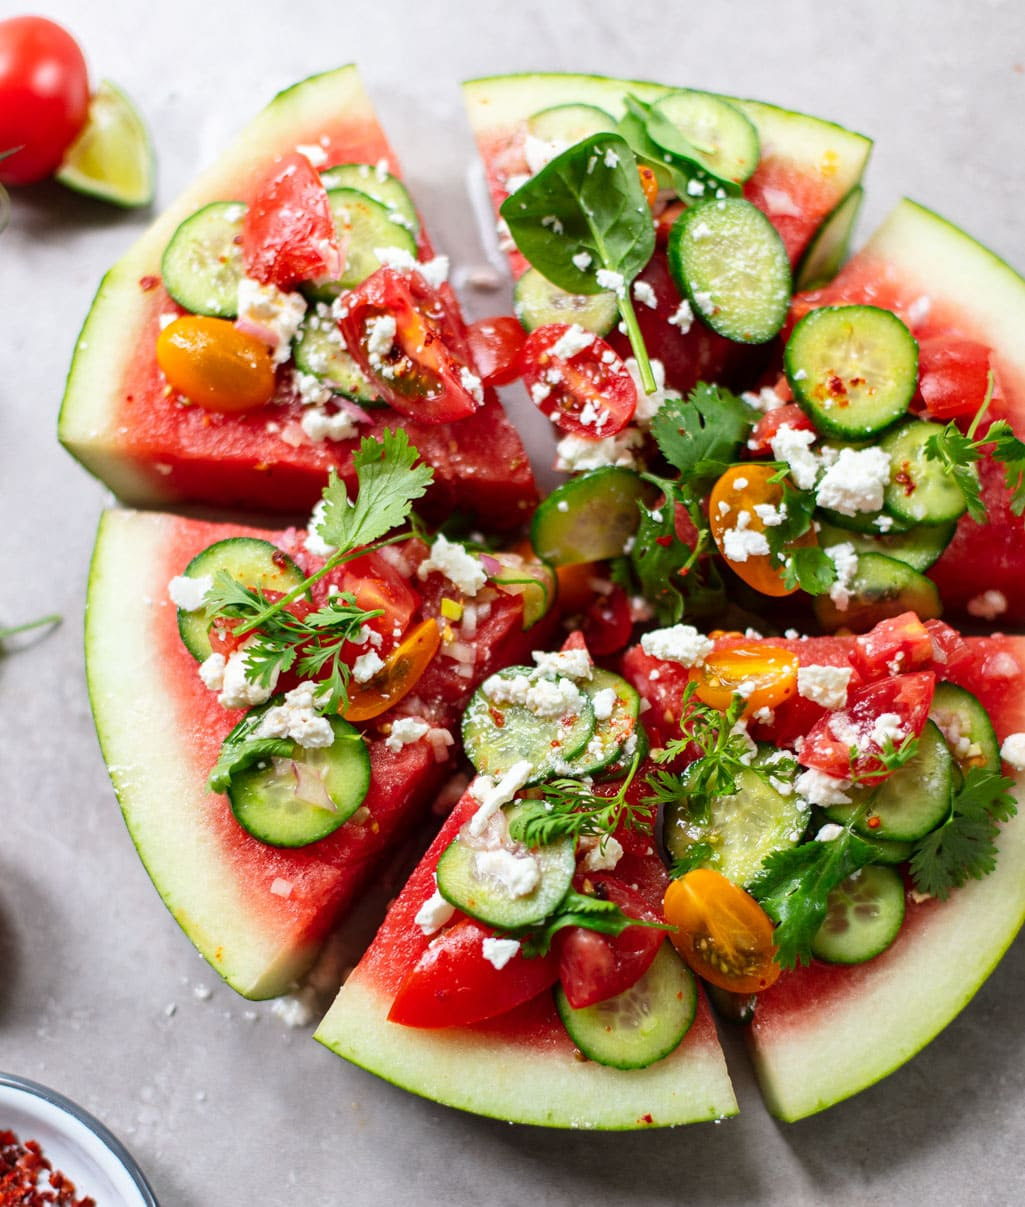 Watermelon Wedge Salad with Feta and Cucumber